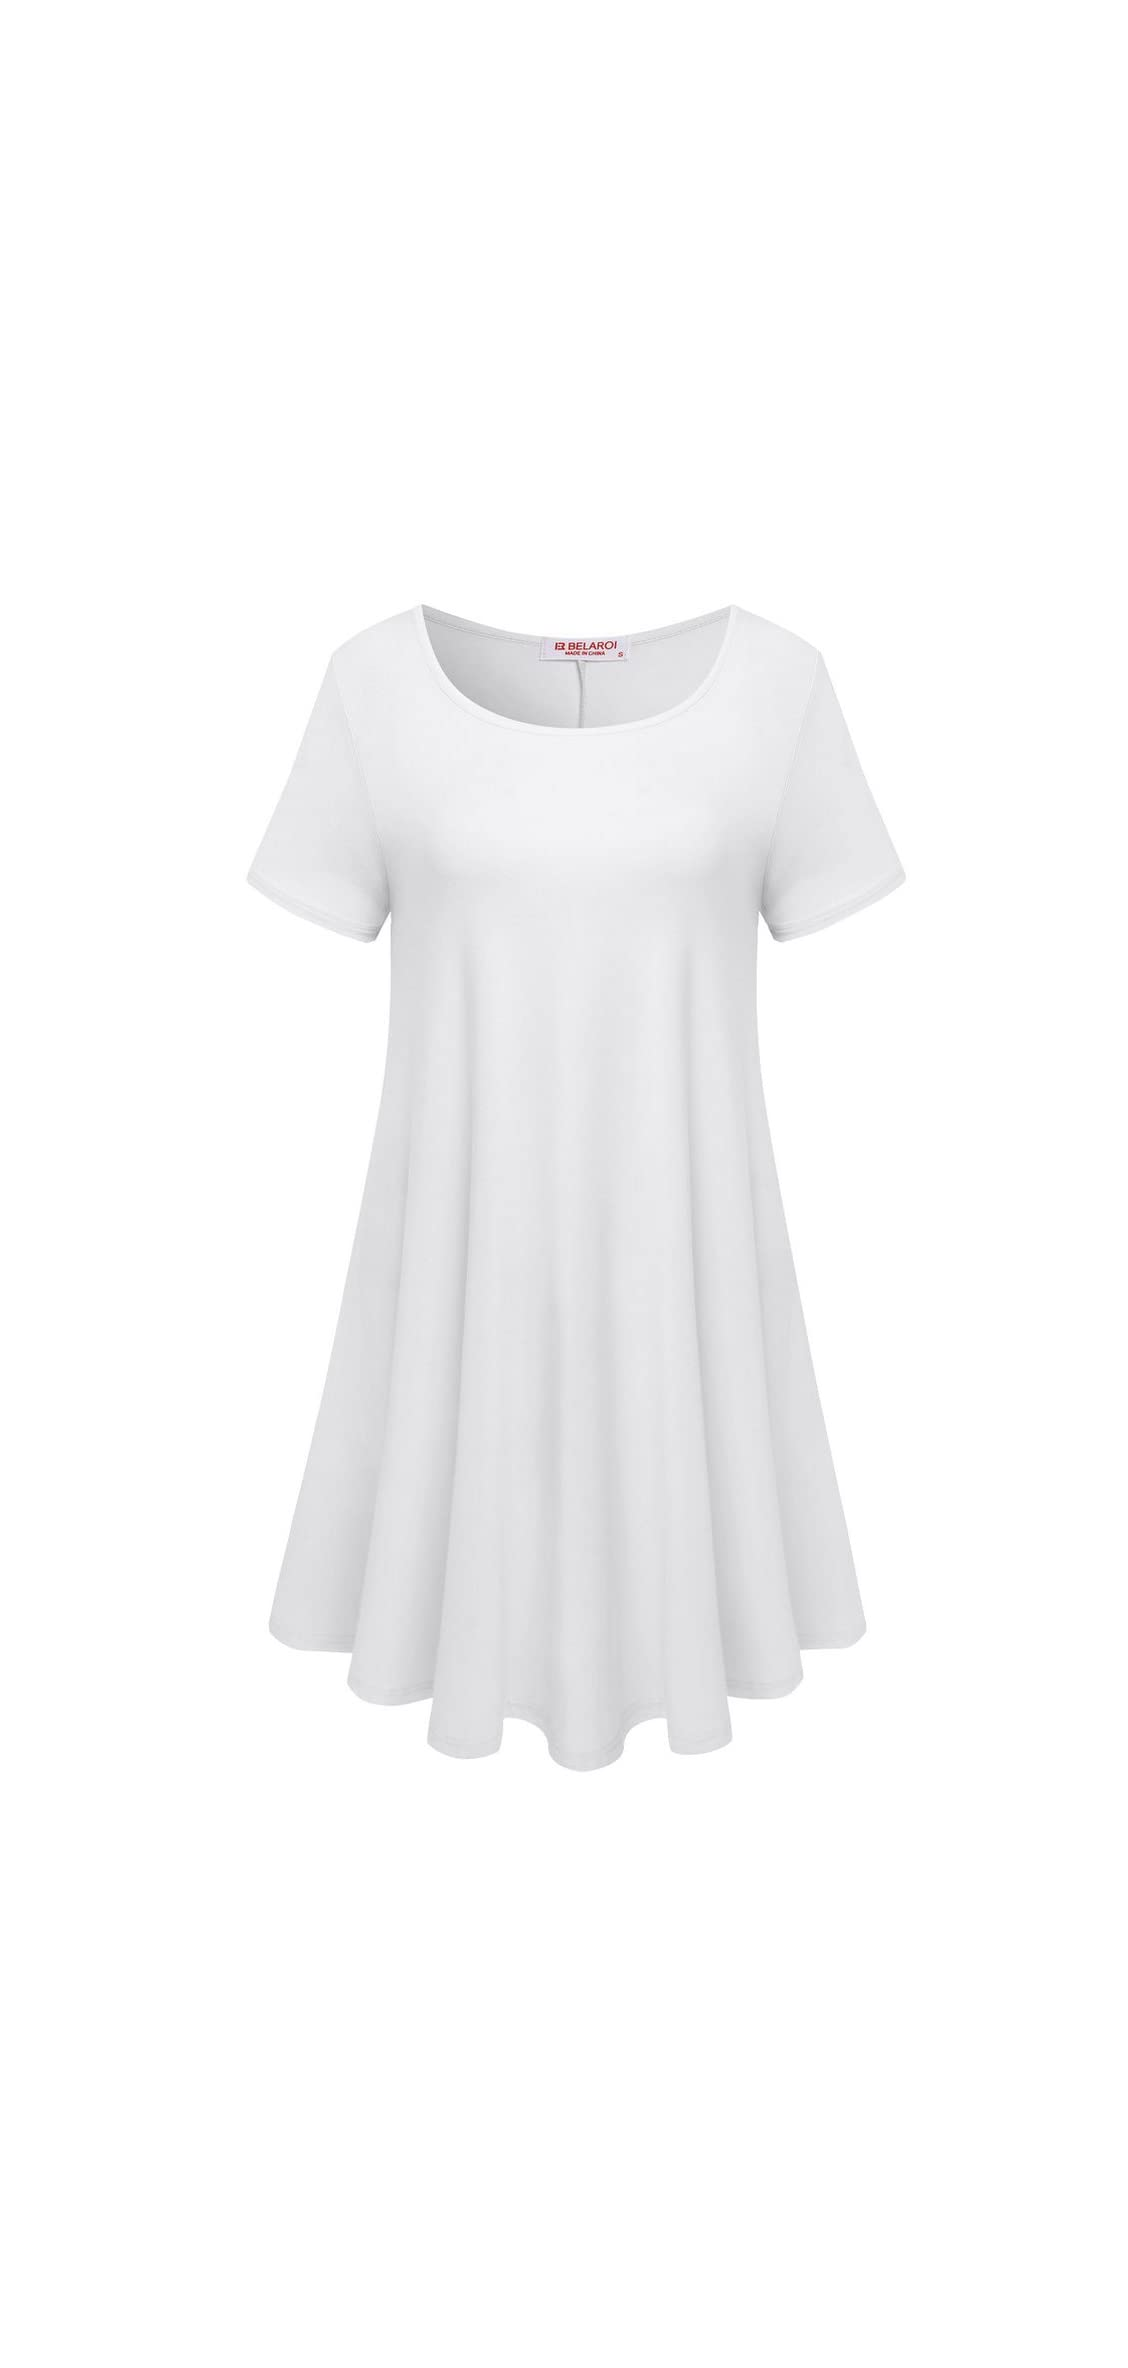 Womens Comfy Swing Tunic Short Sleeve Solid T-shirt